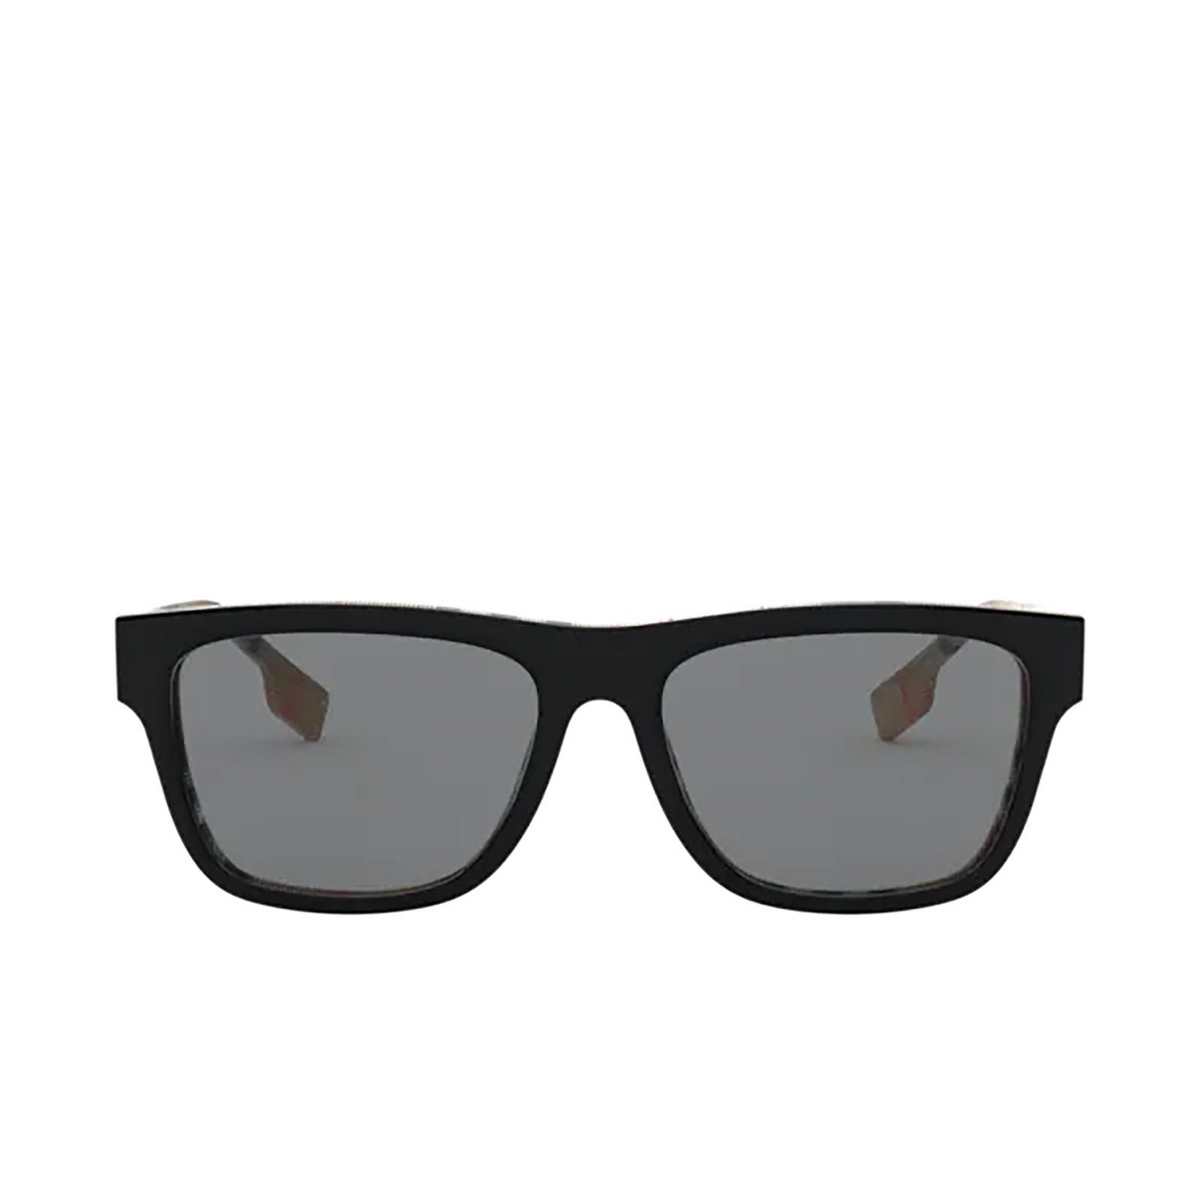 Burberry® Square Sunglasses: BE4293 color Top Black On Vintage Check 380687 - front view.